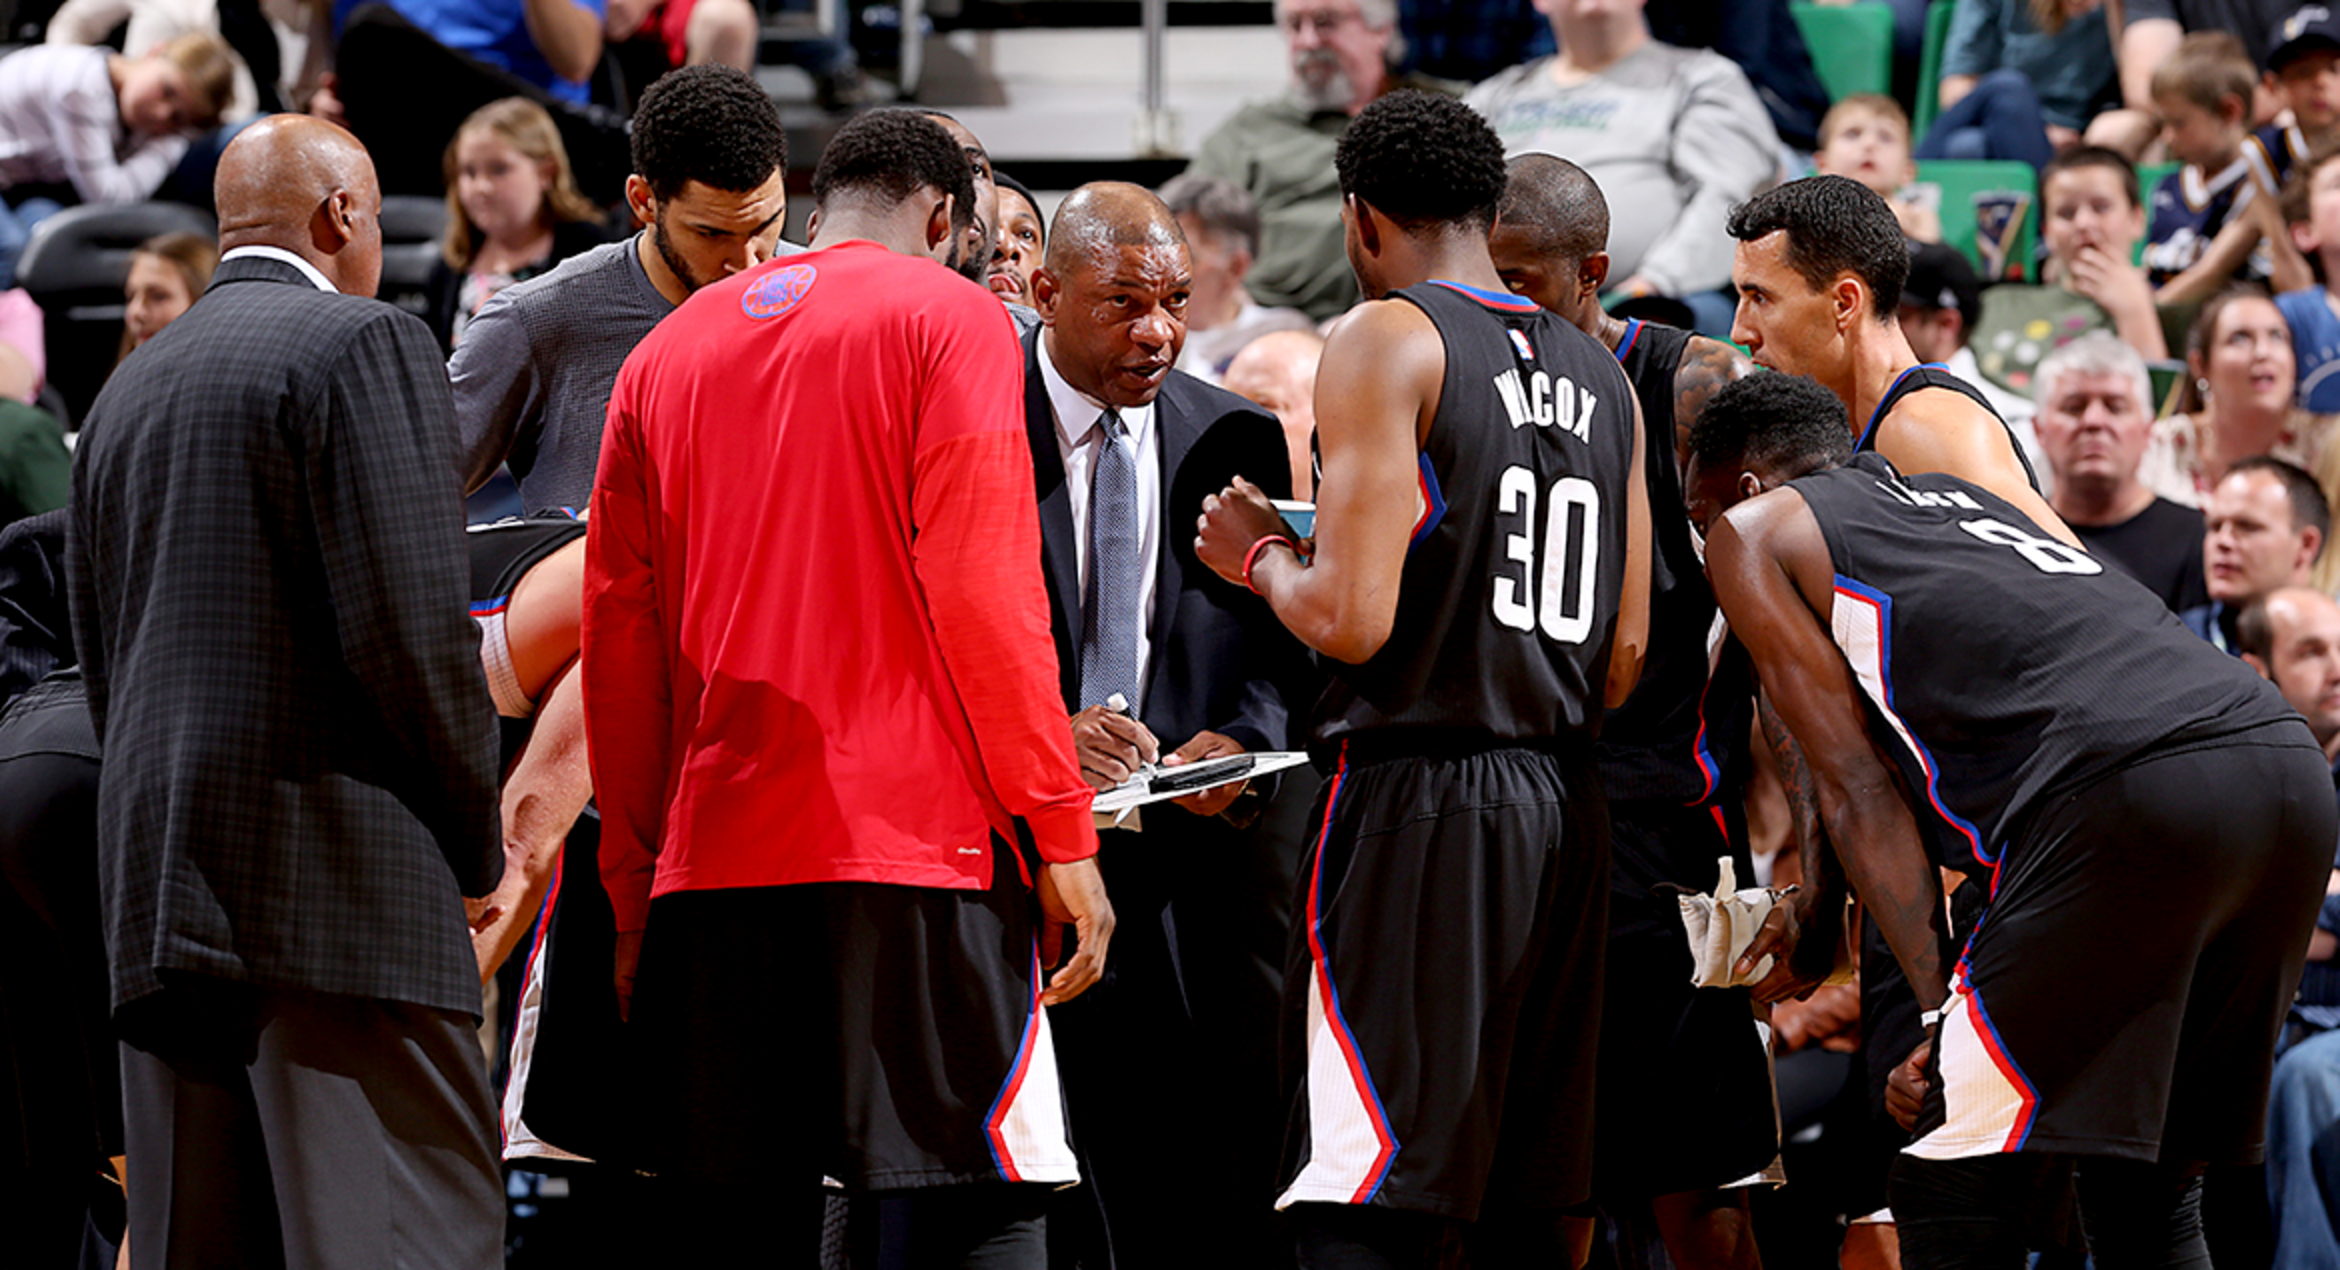 Image of Team Huddle - Article:2015-16 Season In Numbers, Part 2